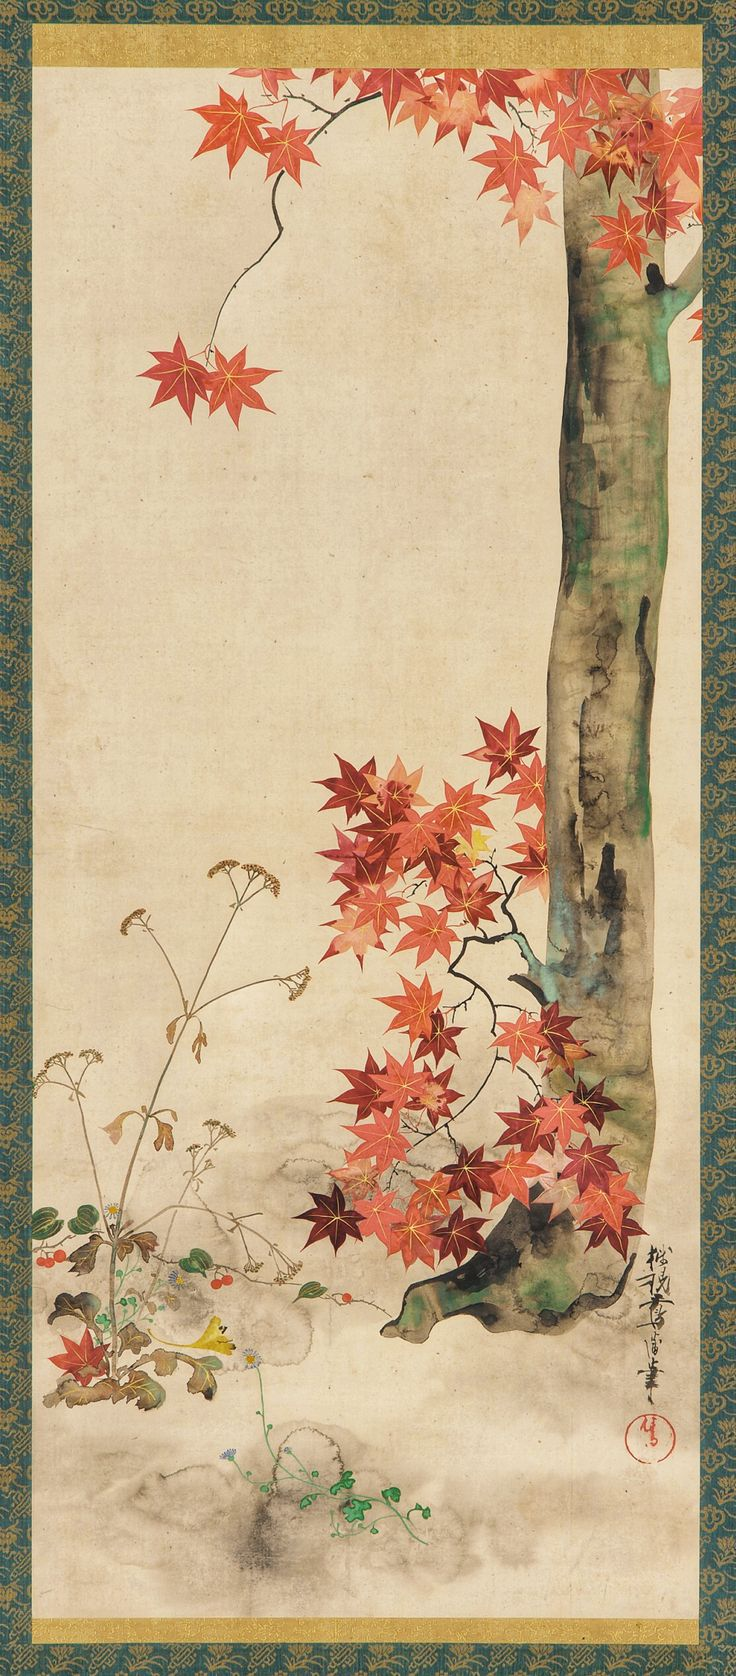 Japanese Maple and Autumn Plants. Japanese hanging scroll. 酒井鶯蒲 Sakai Oho. Ink and color on paper. Edo period. Rimpa School. Freer.